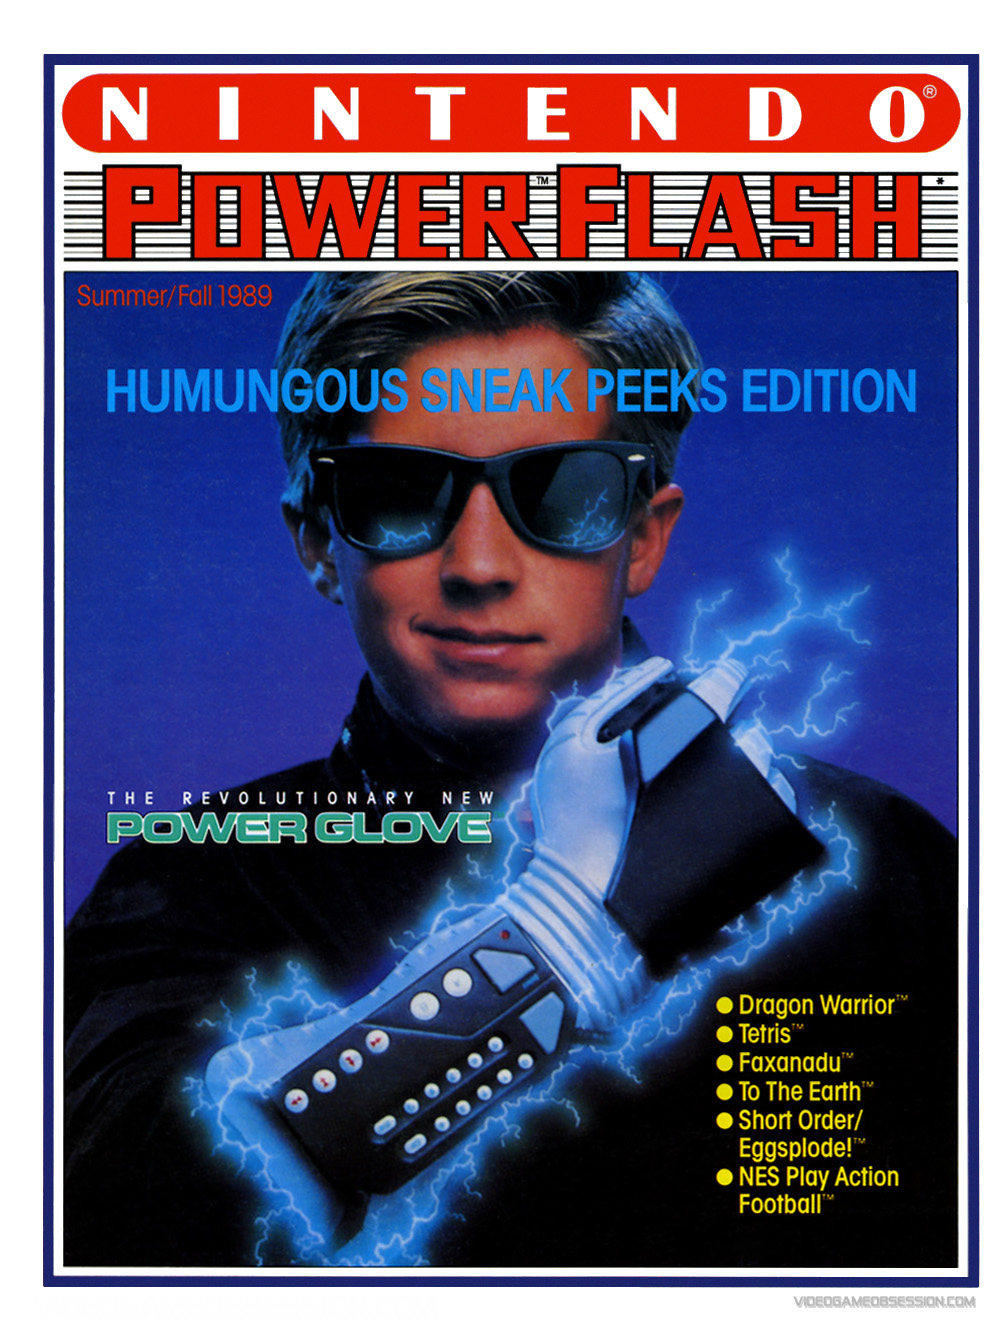 NintendoPowerFlash-05-Fall1989-vgo.jpg